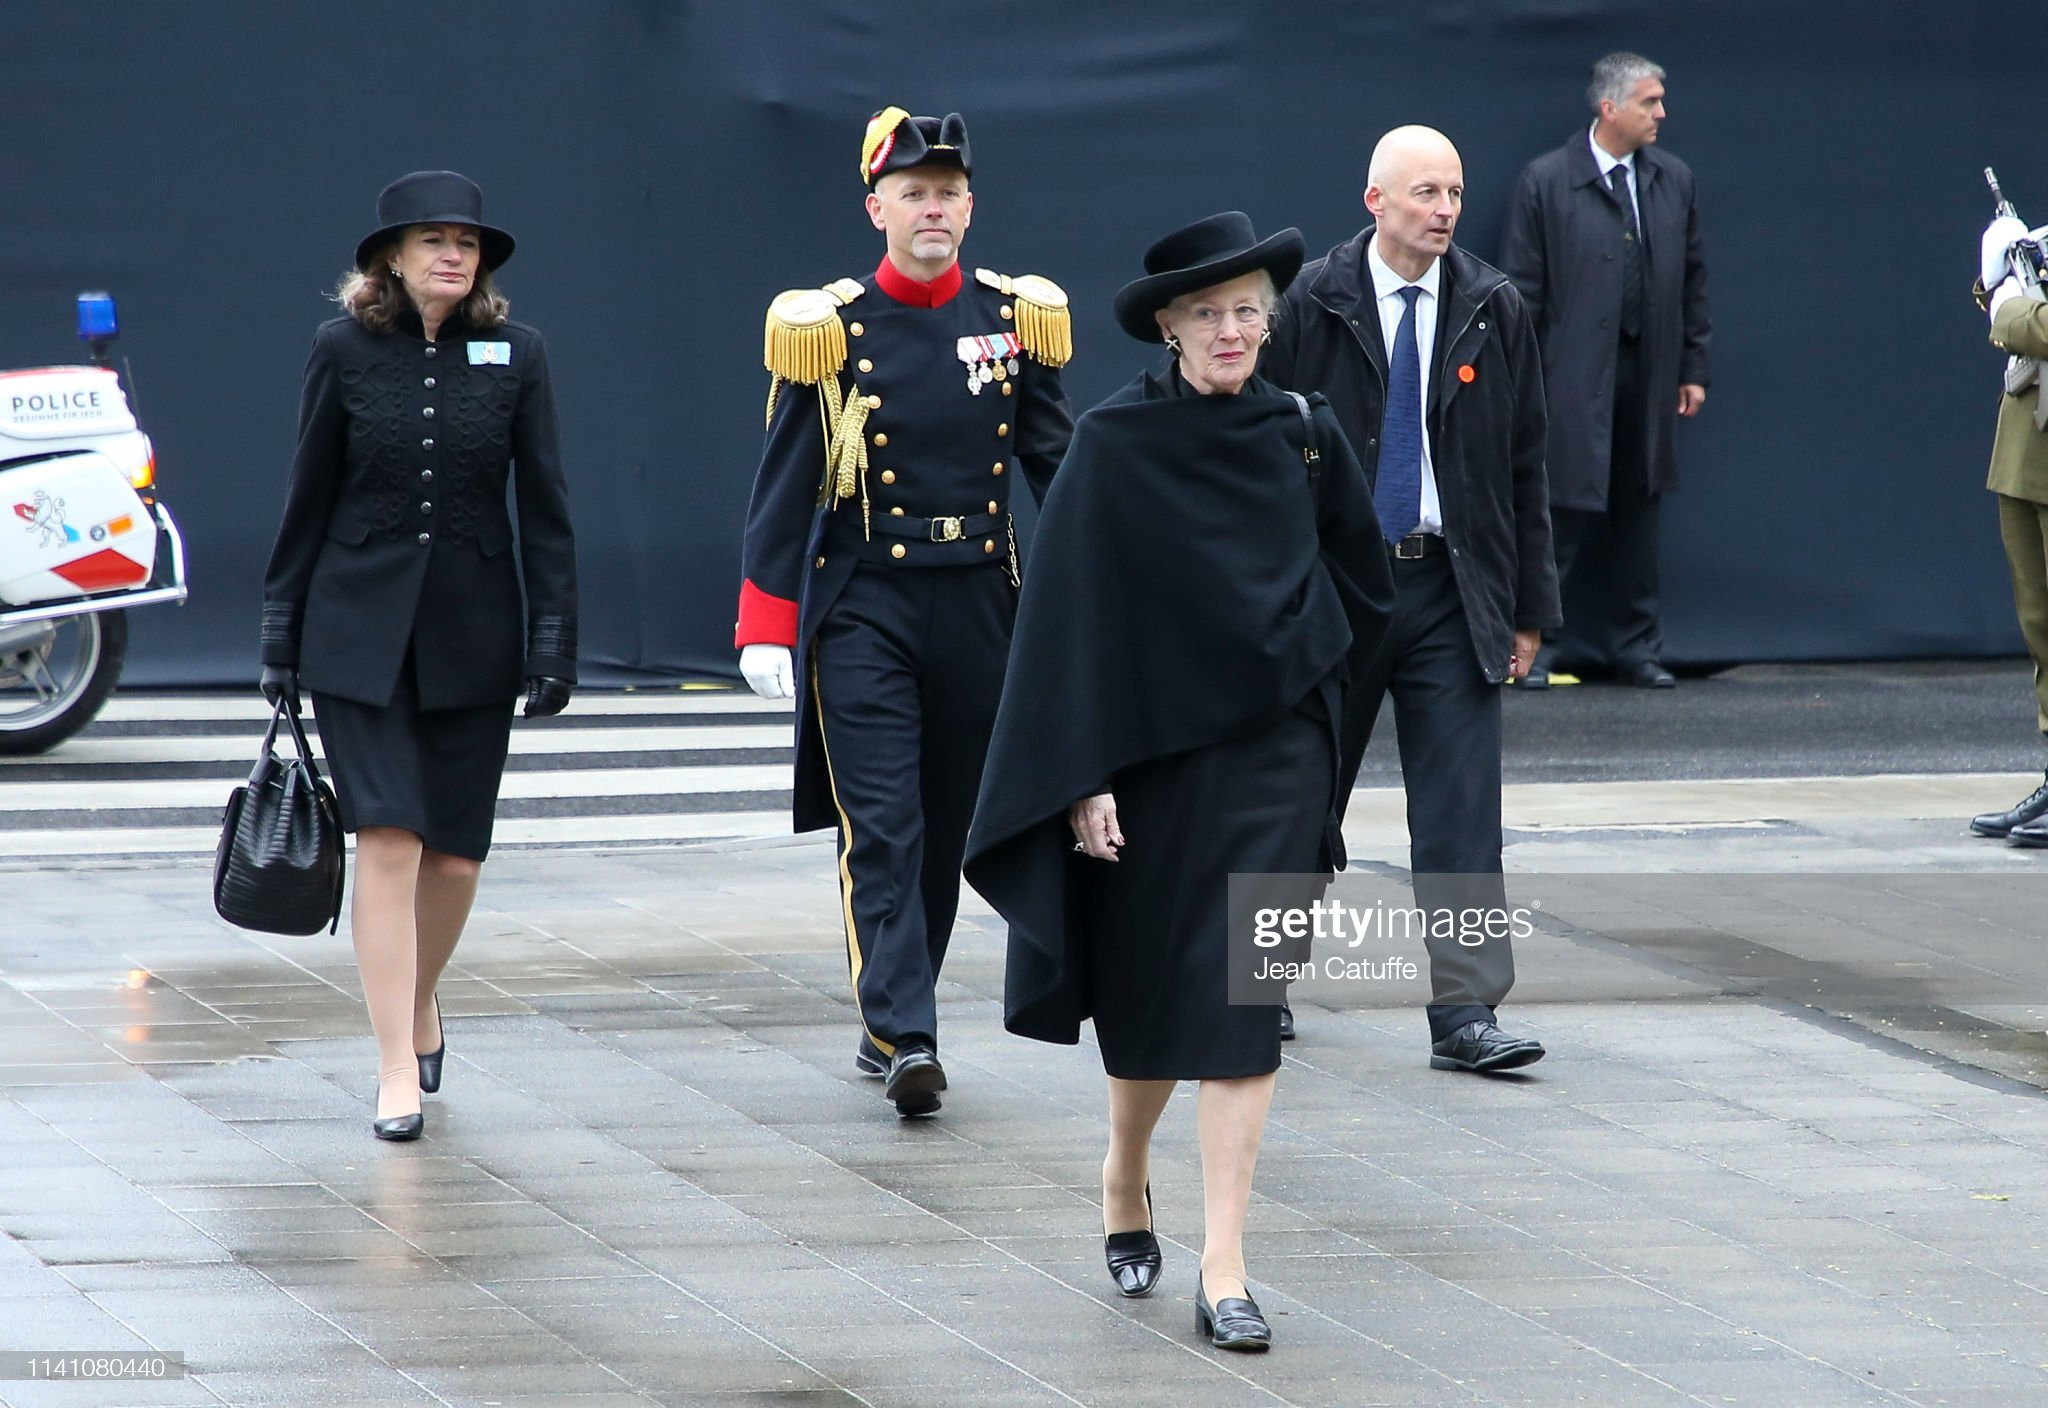 Похороны Великого Герцога Жана https://media.gettyimages.com/photos/queen-margrethe-ii-of-denmark-arrives-for-the-funeral-of-grand-duke-picture-id1141080440?s=2048x2048